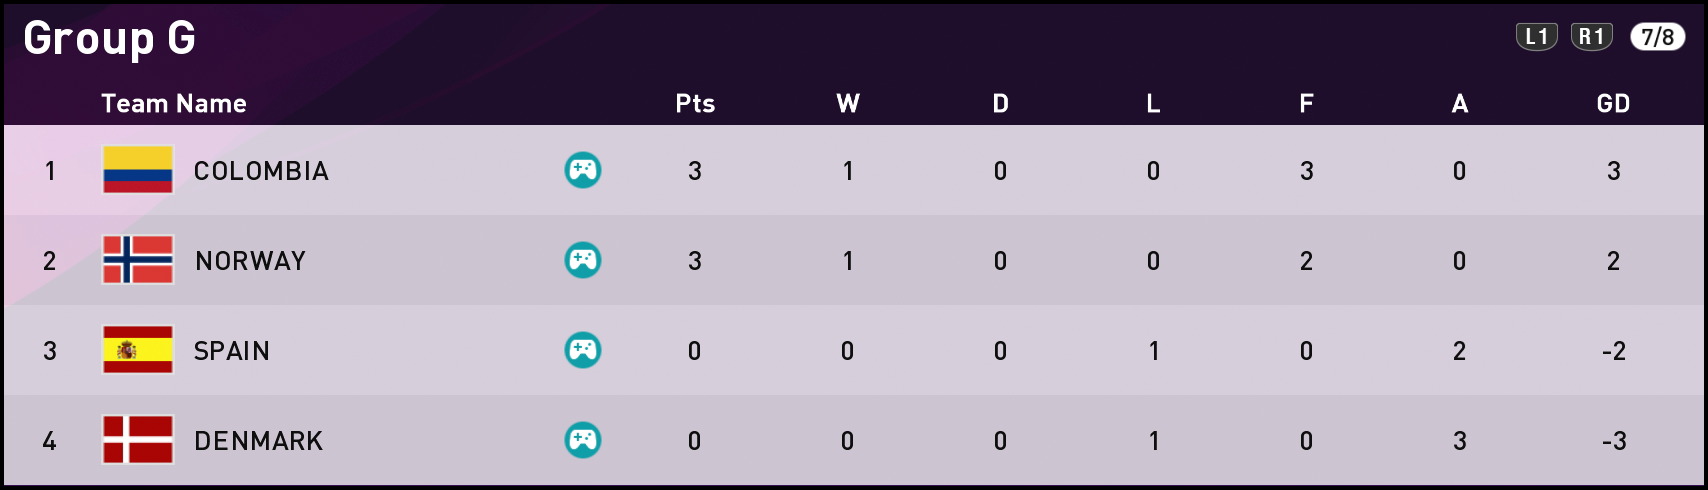 FTWC20-Group-G-1-Game.png